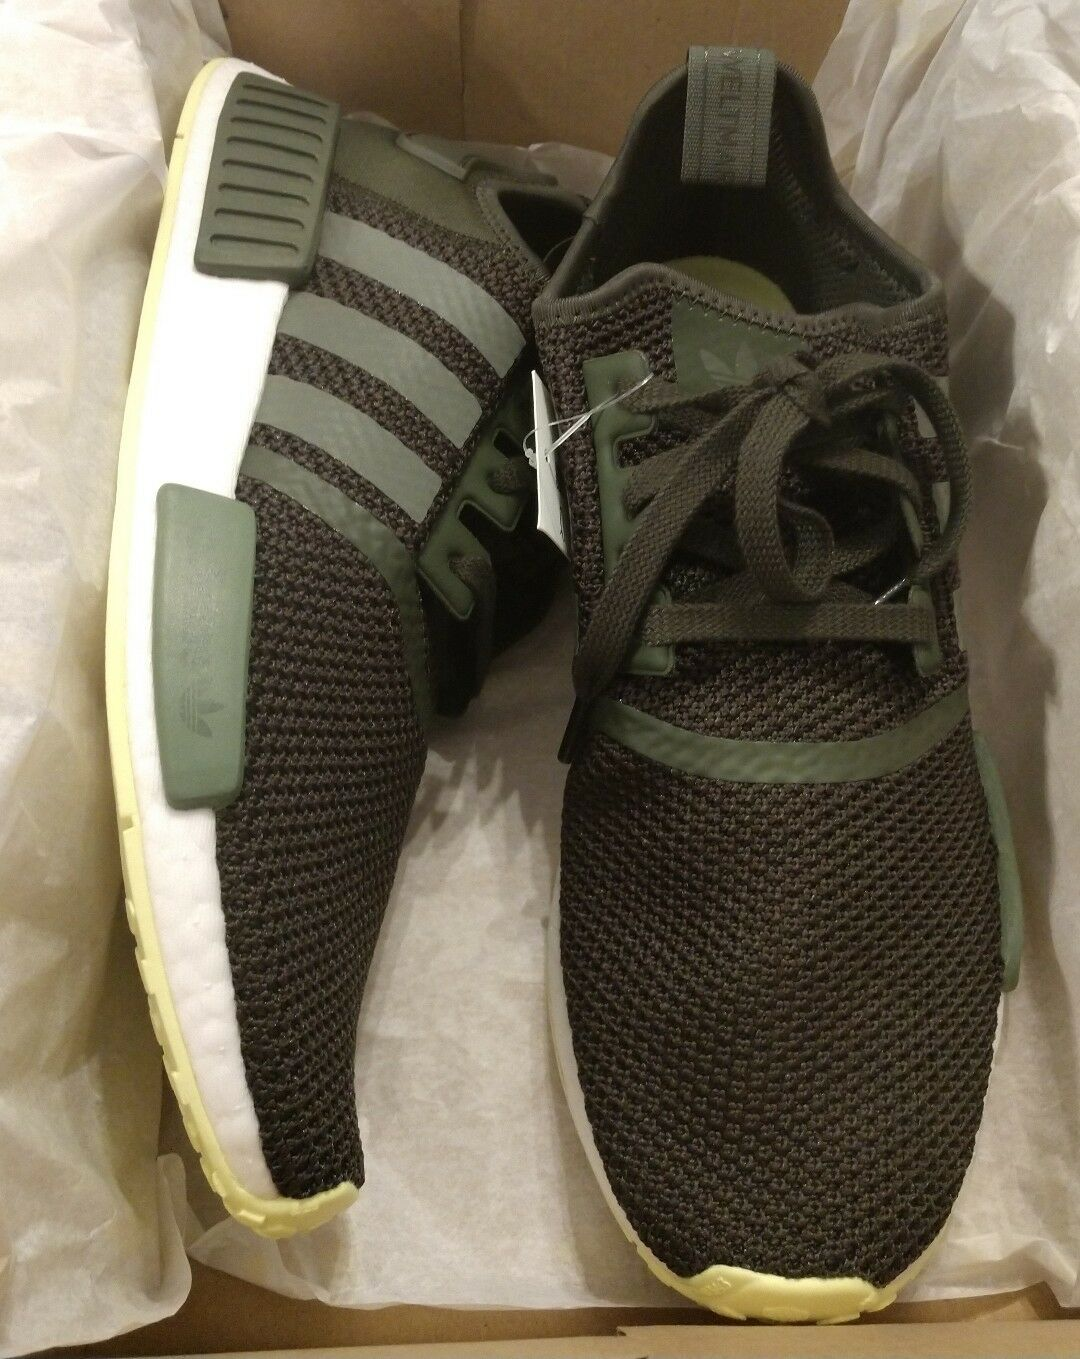 Adidas NIB NMD R1 Cargo Green Bright Yellow Size 11 NIB Adidas CQ2414 Hard to Find d3ba77